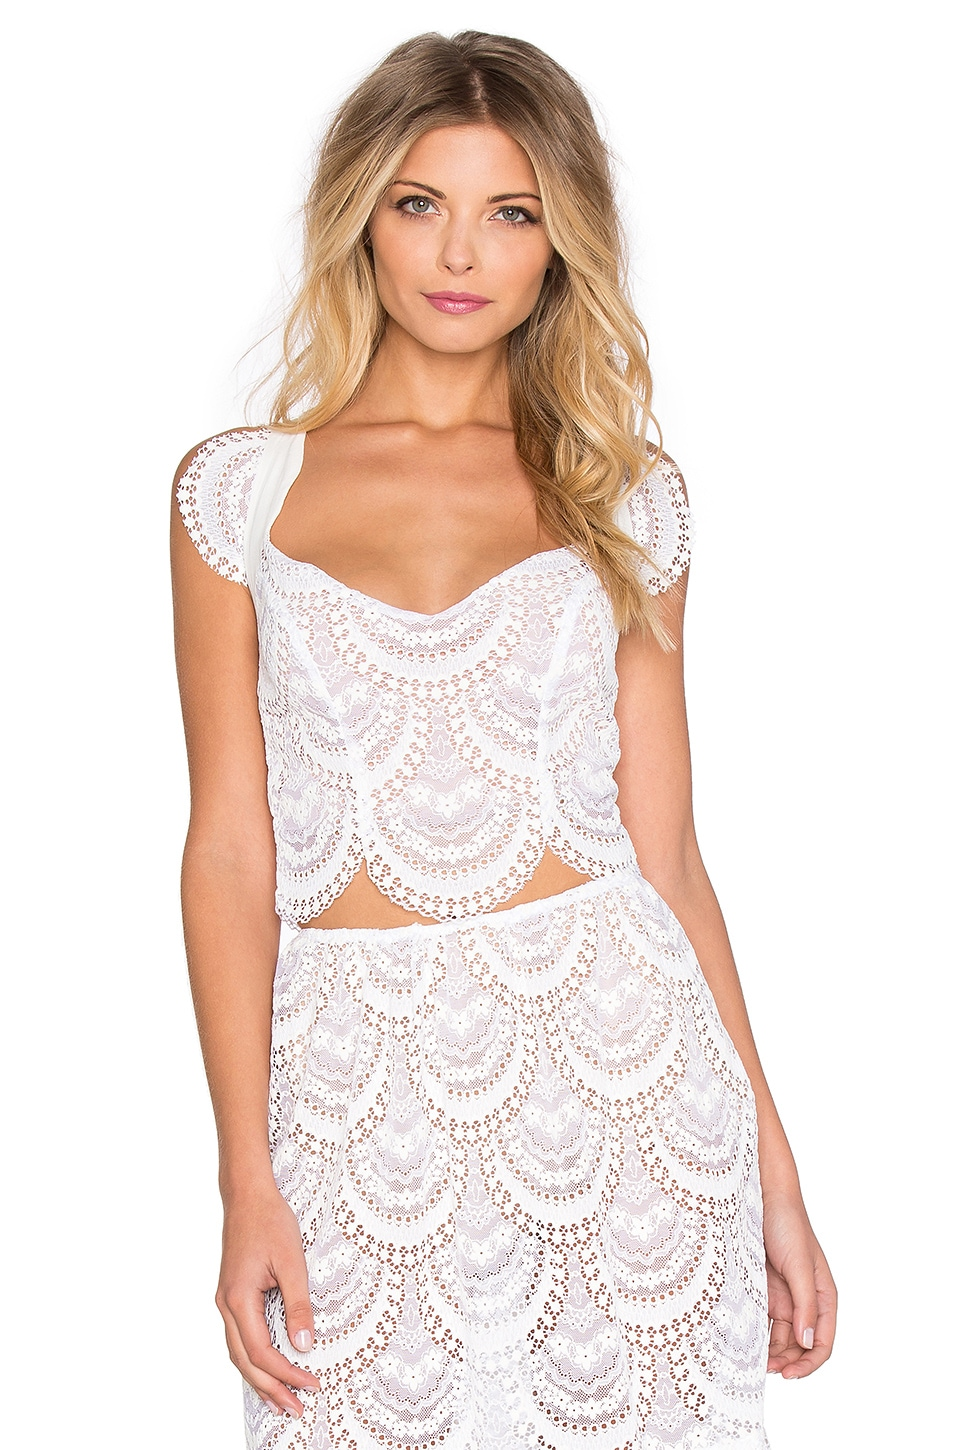 For Love & Lemons Rosalita Crop Top in White